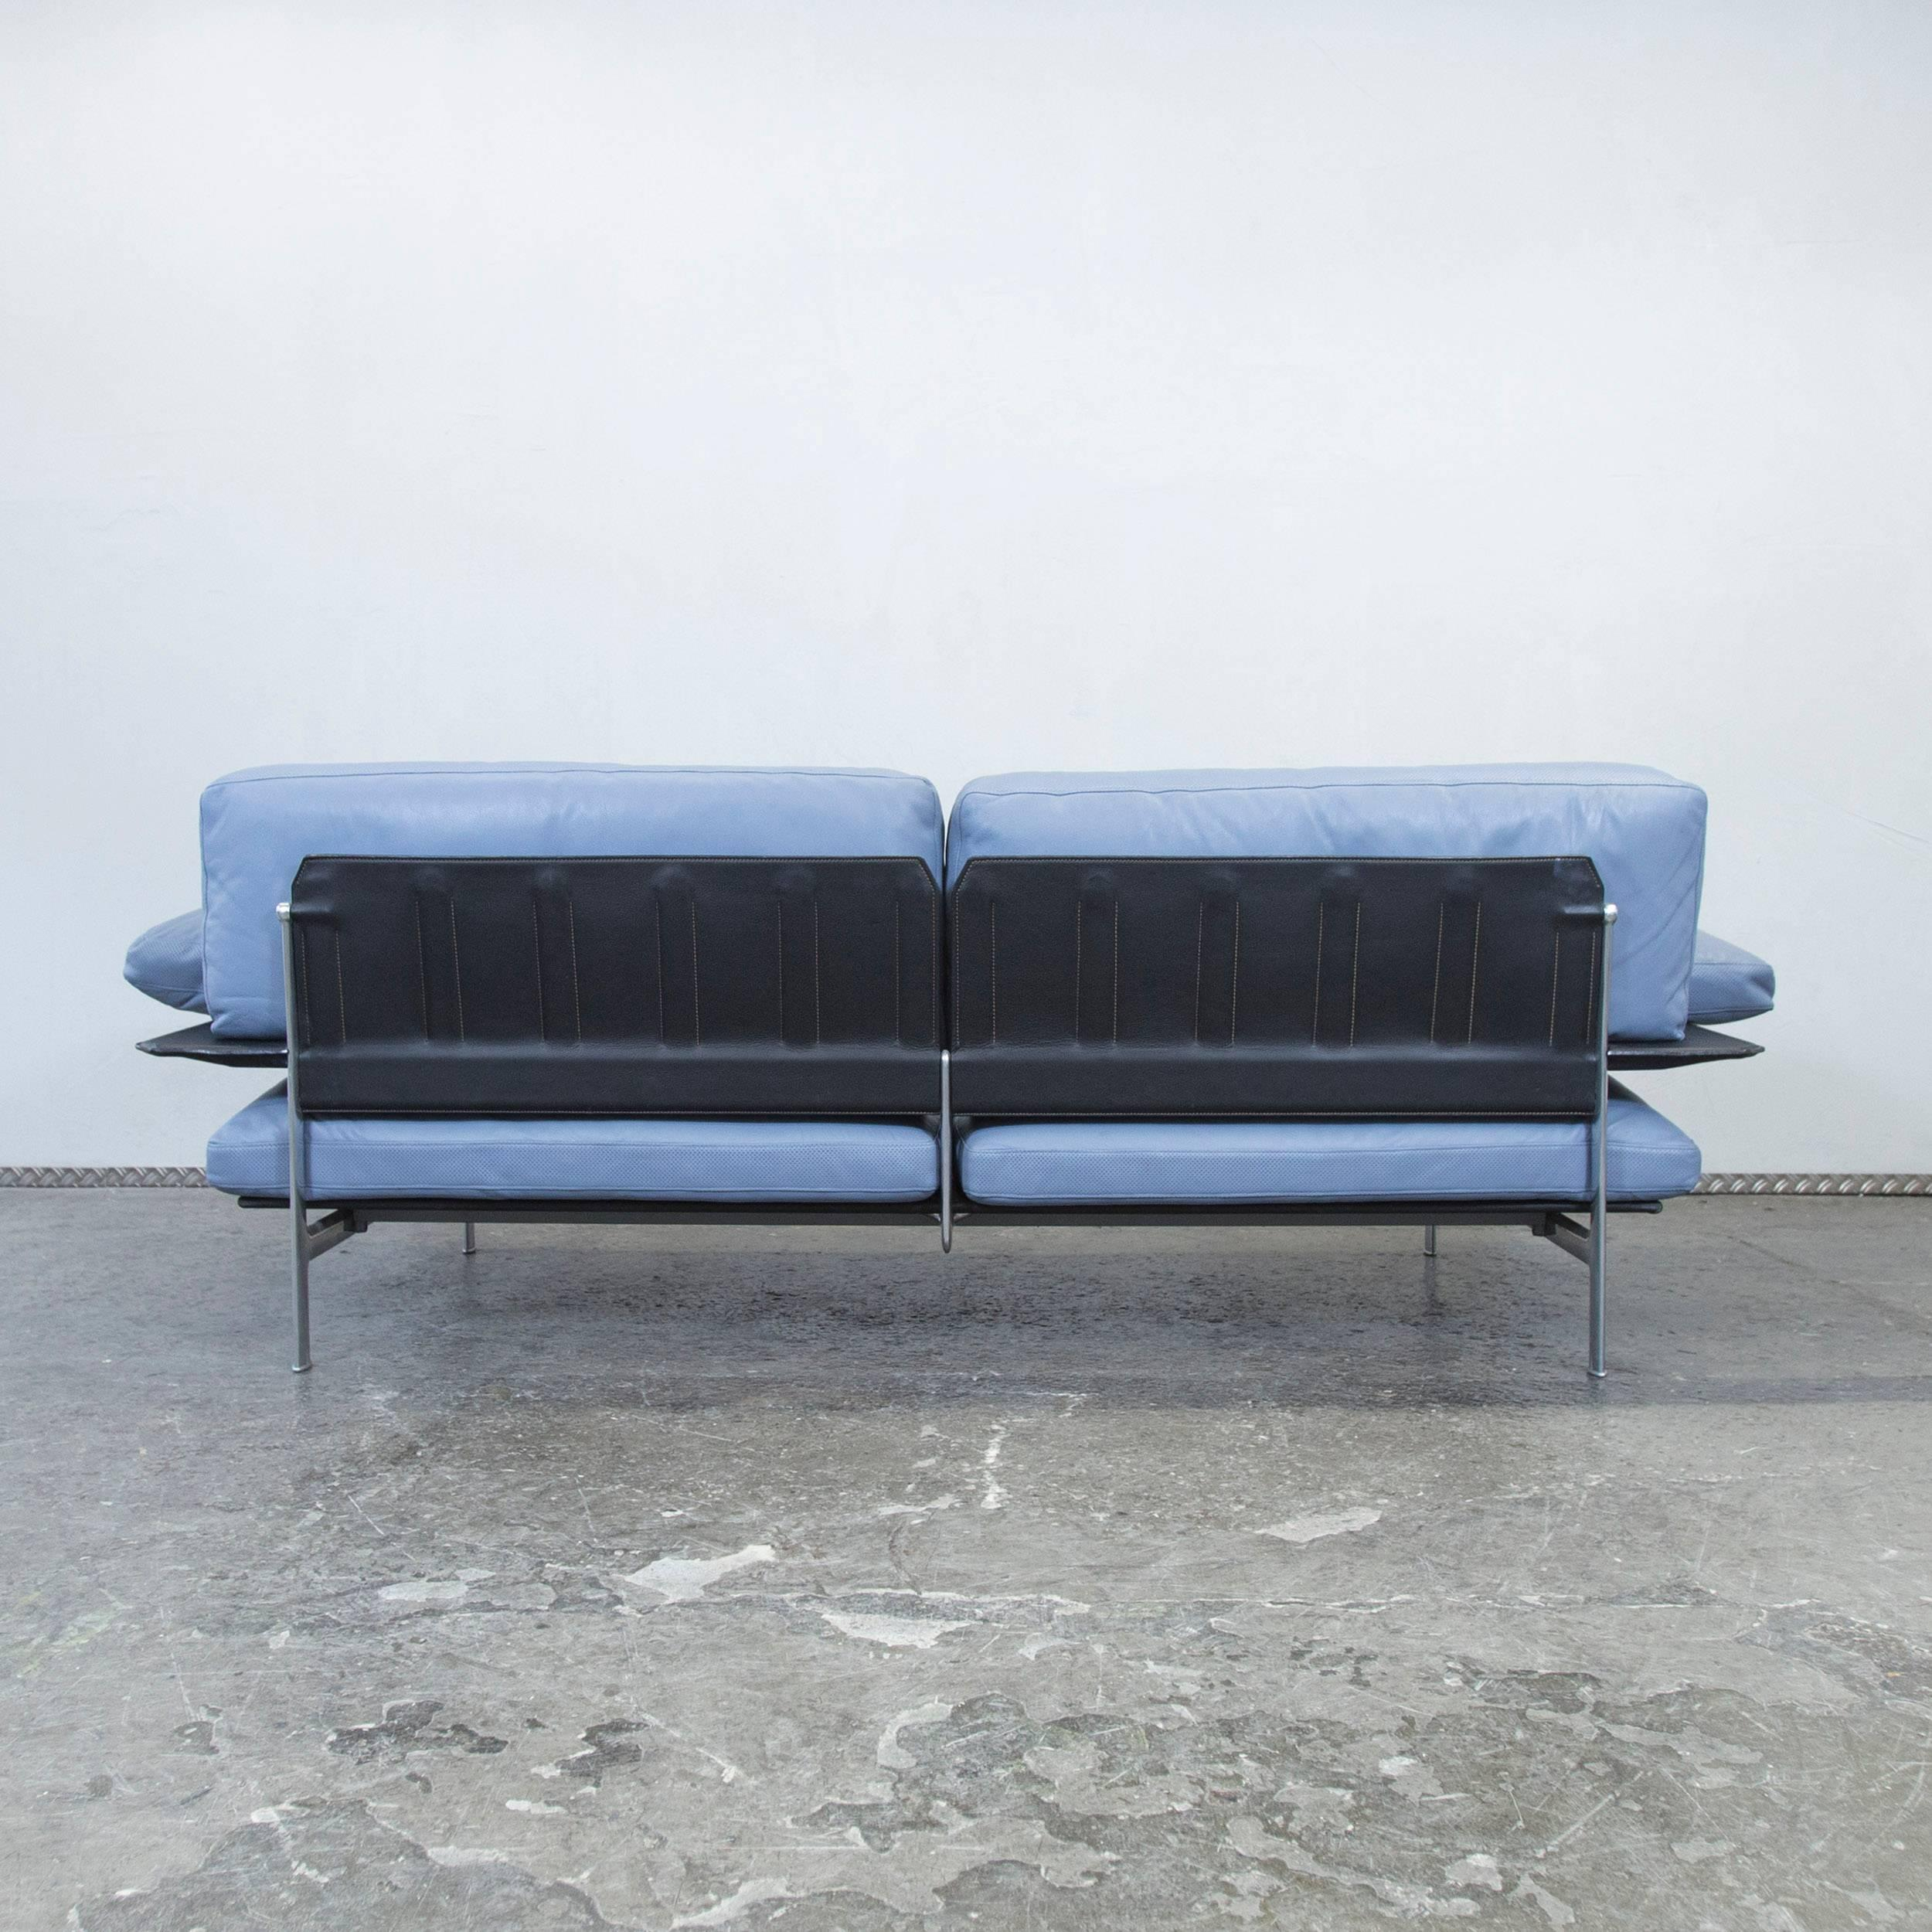 B&B Italia Designer Sofa Blue Leather Two Seat Couch Modern at 1stdibs